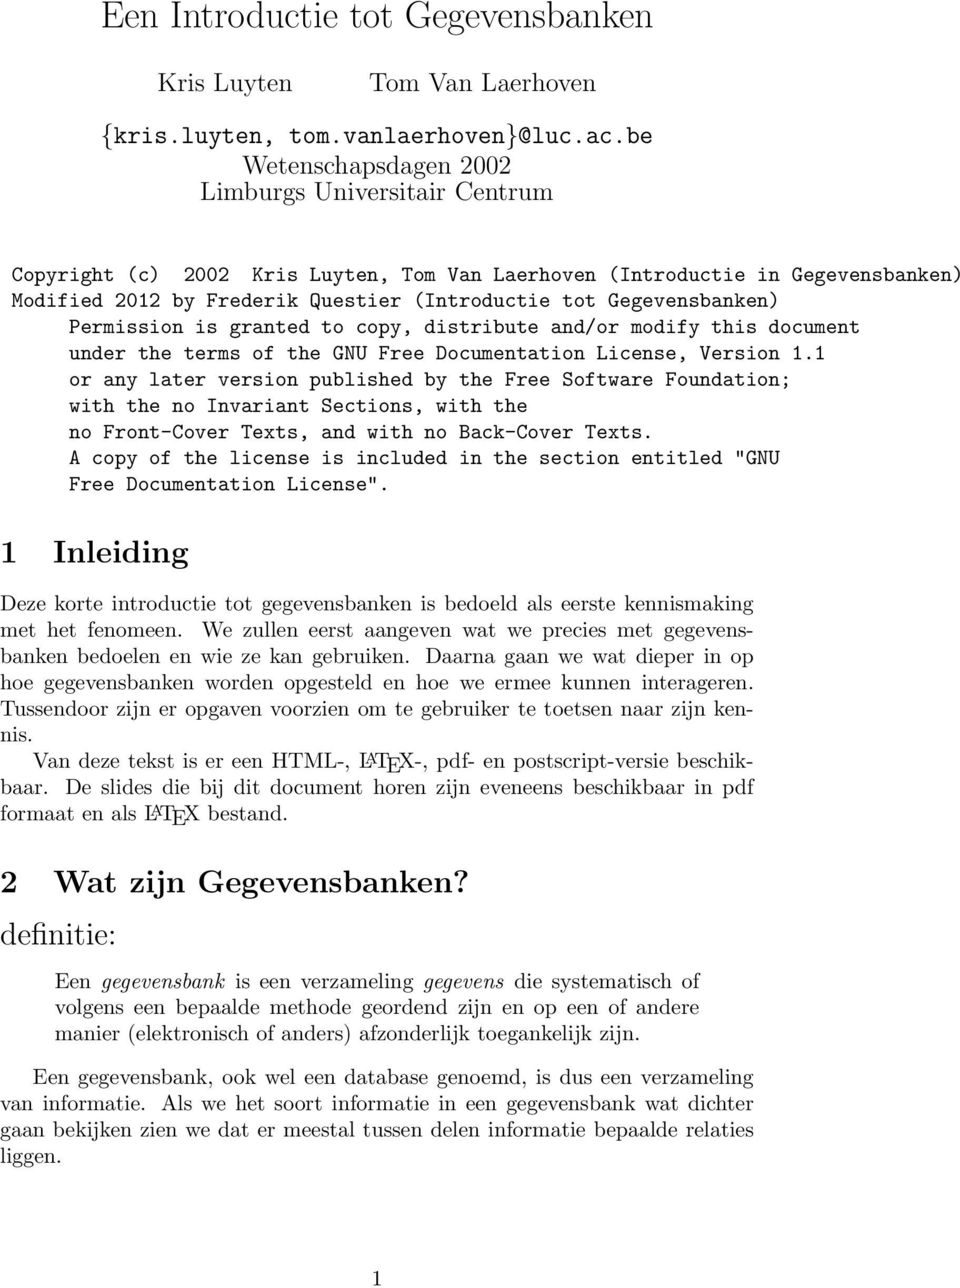 Gegevensbanken) Permission is granted to copy, distribute and/or modify this document under the terms of the GNU Free Documentation License, Version 1.